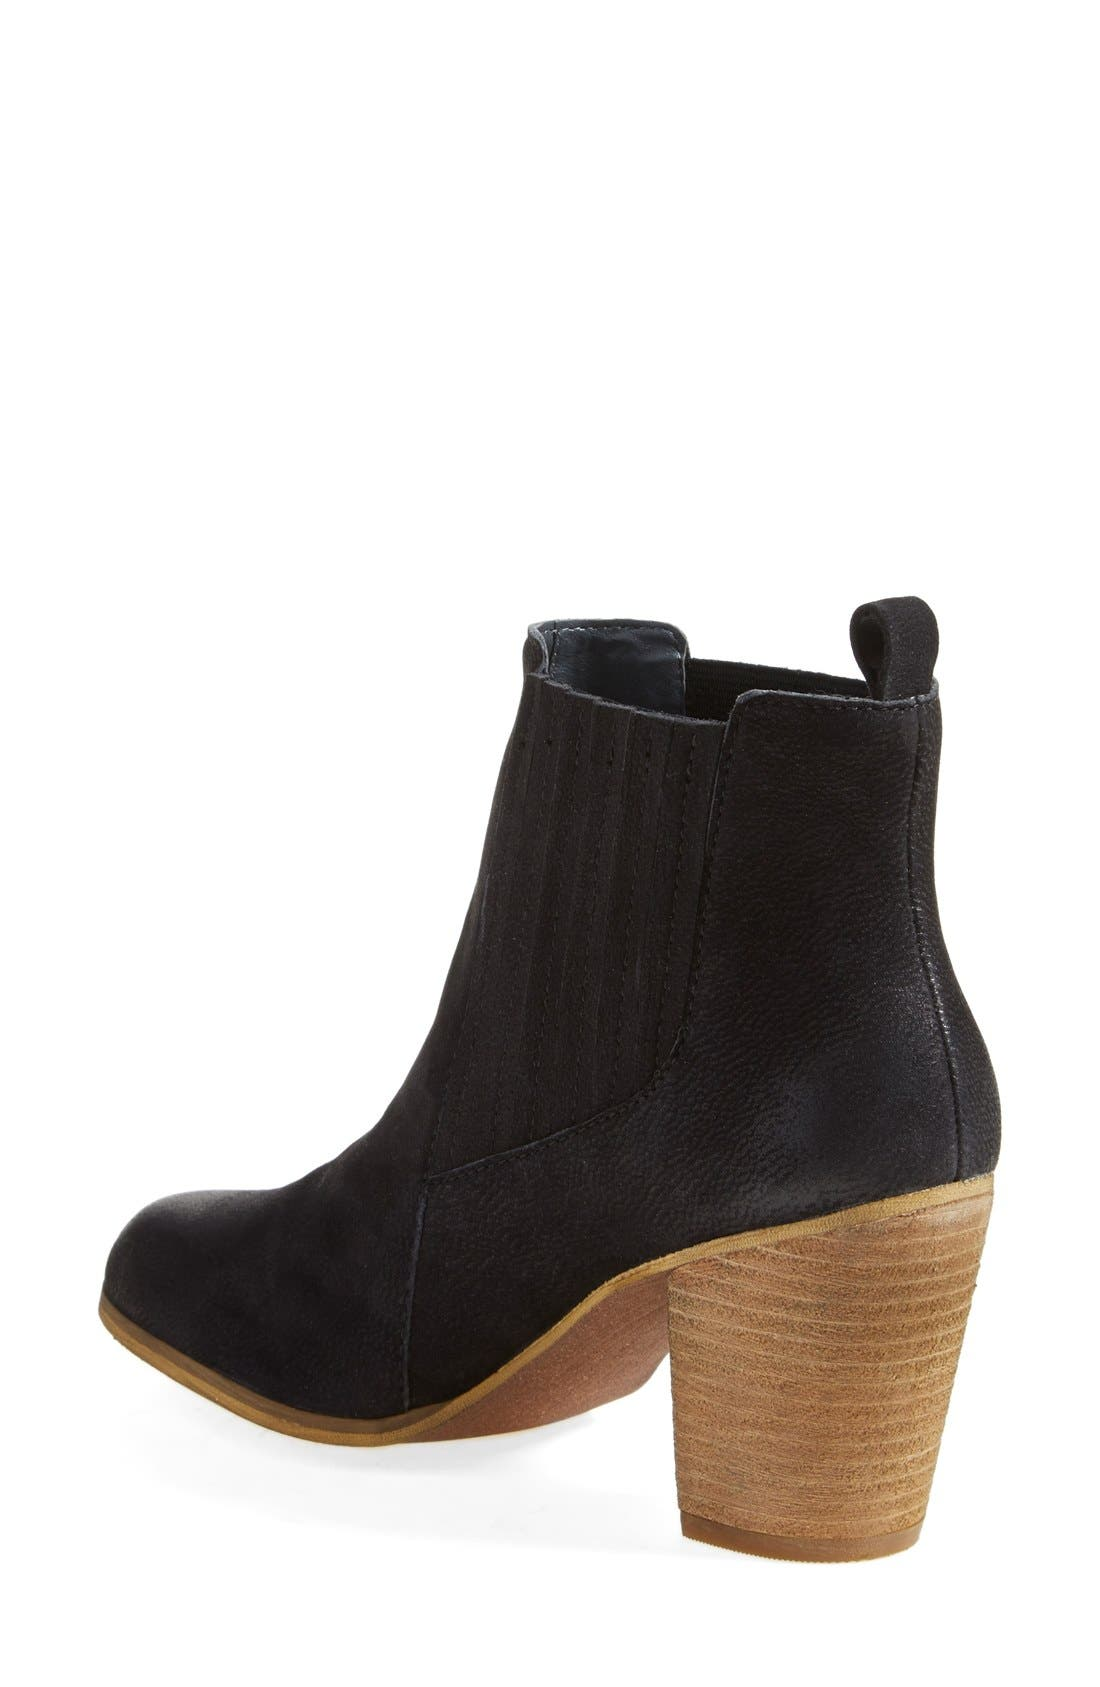 'Andover' Bootie,                             Alternate thumbnail 3, color,                             001